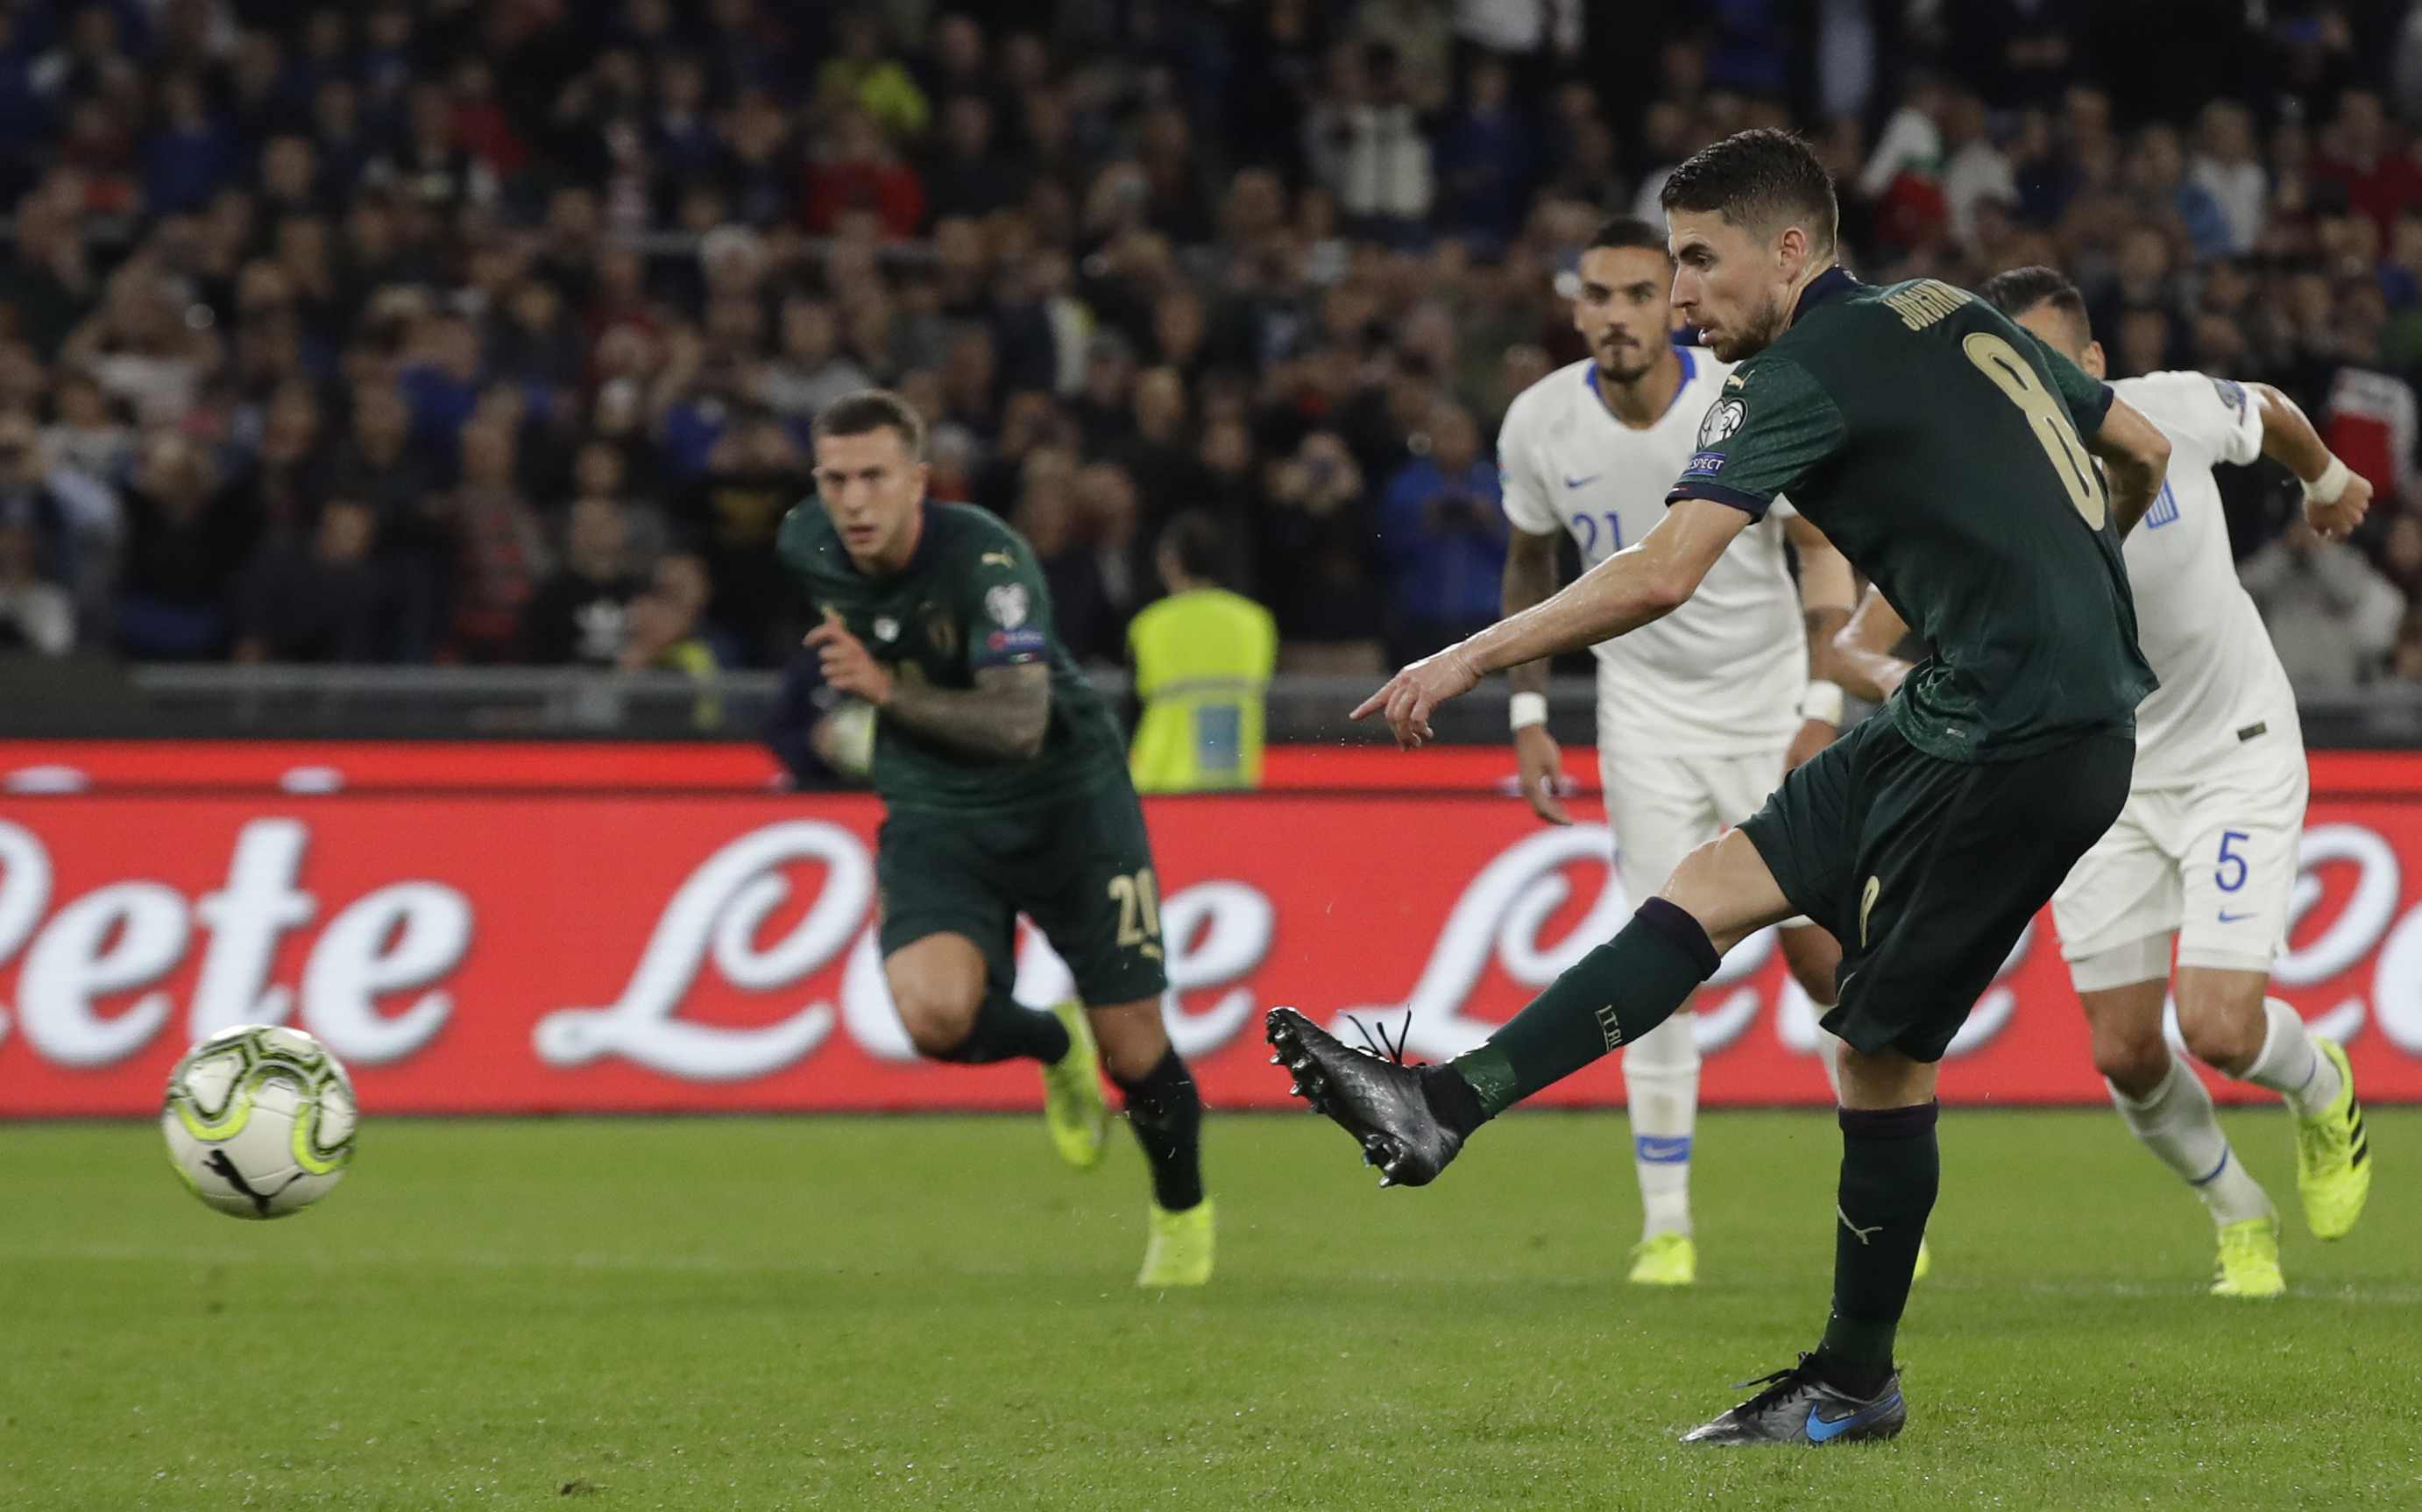 Italy clinch place at Euro 2020 as Spain have to wait